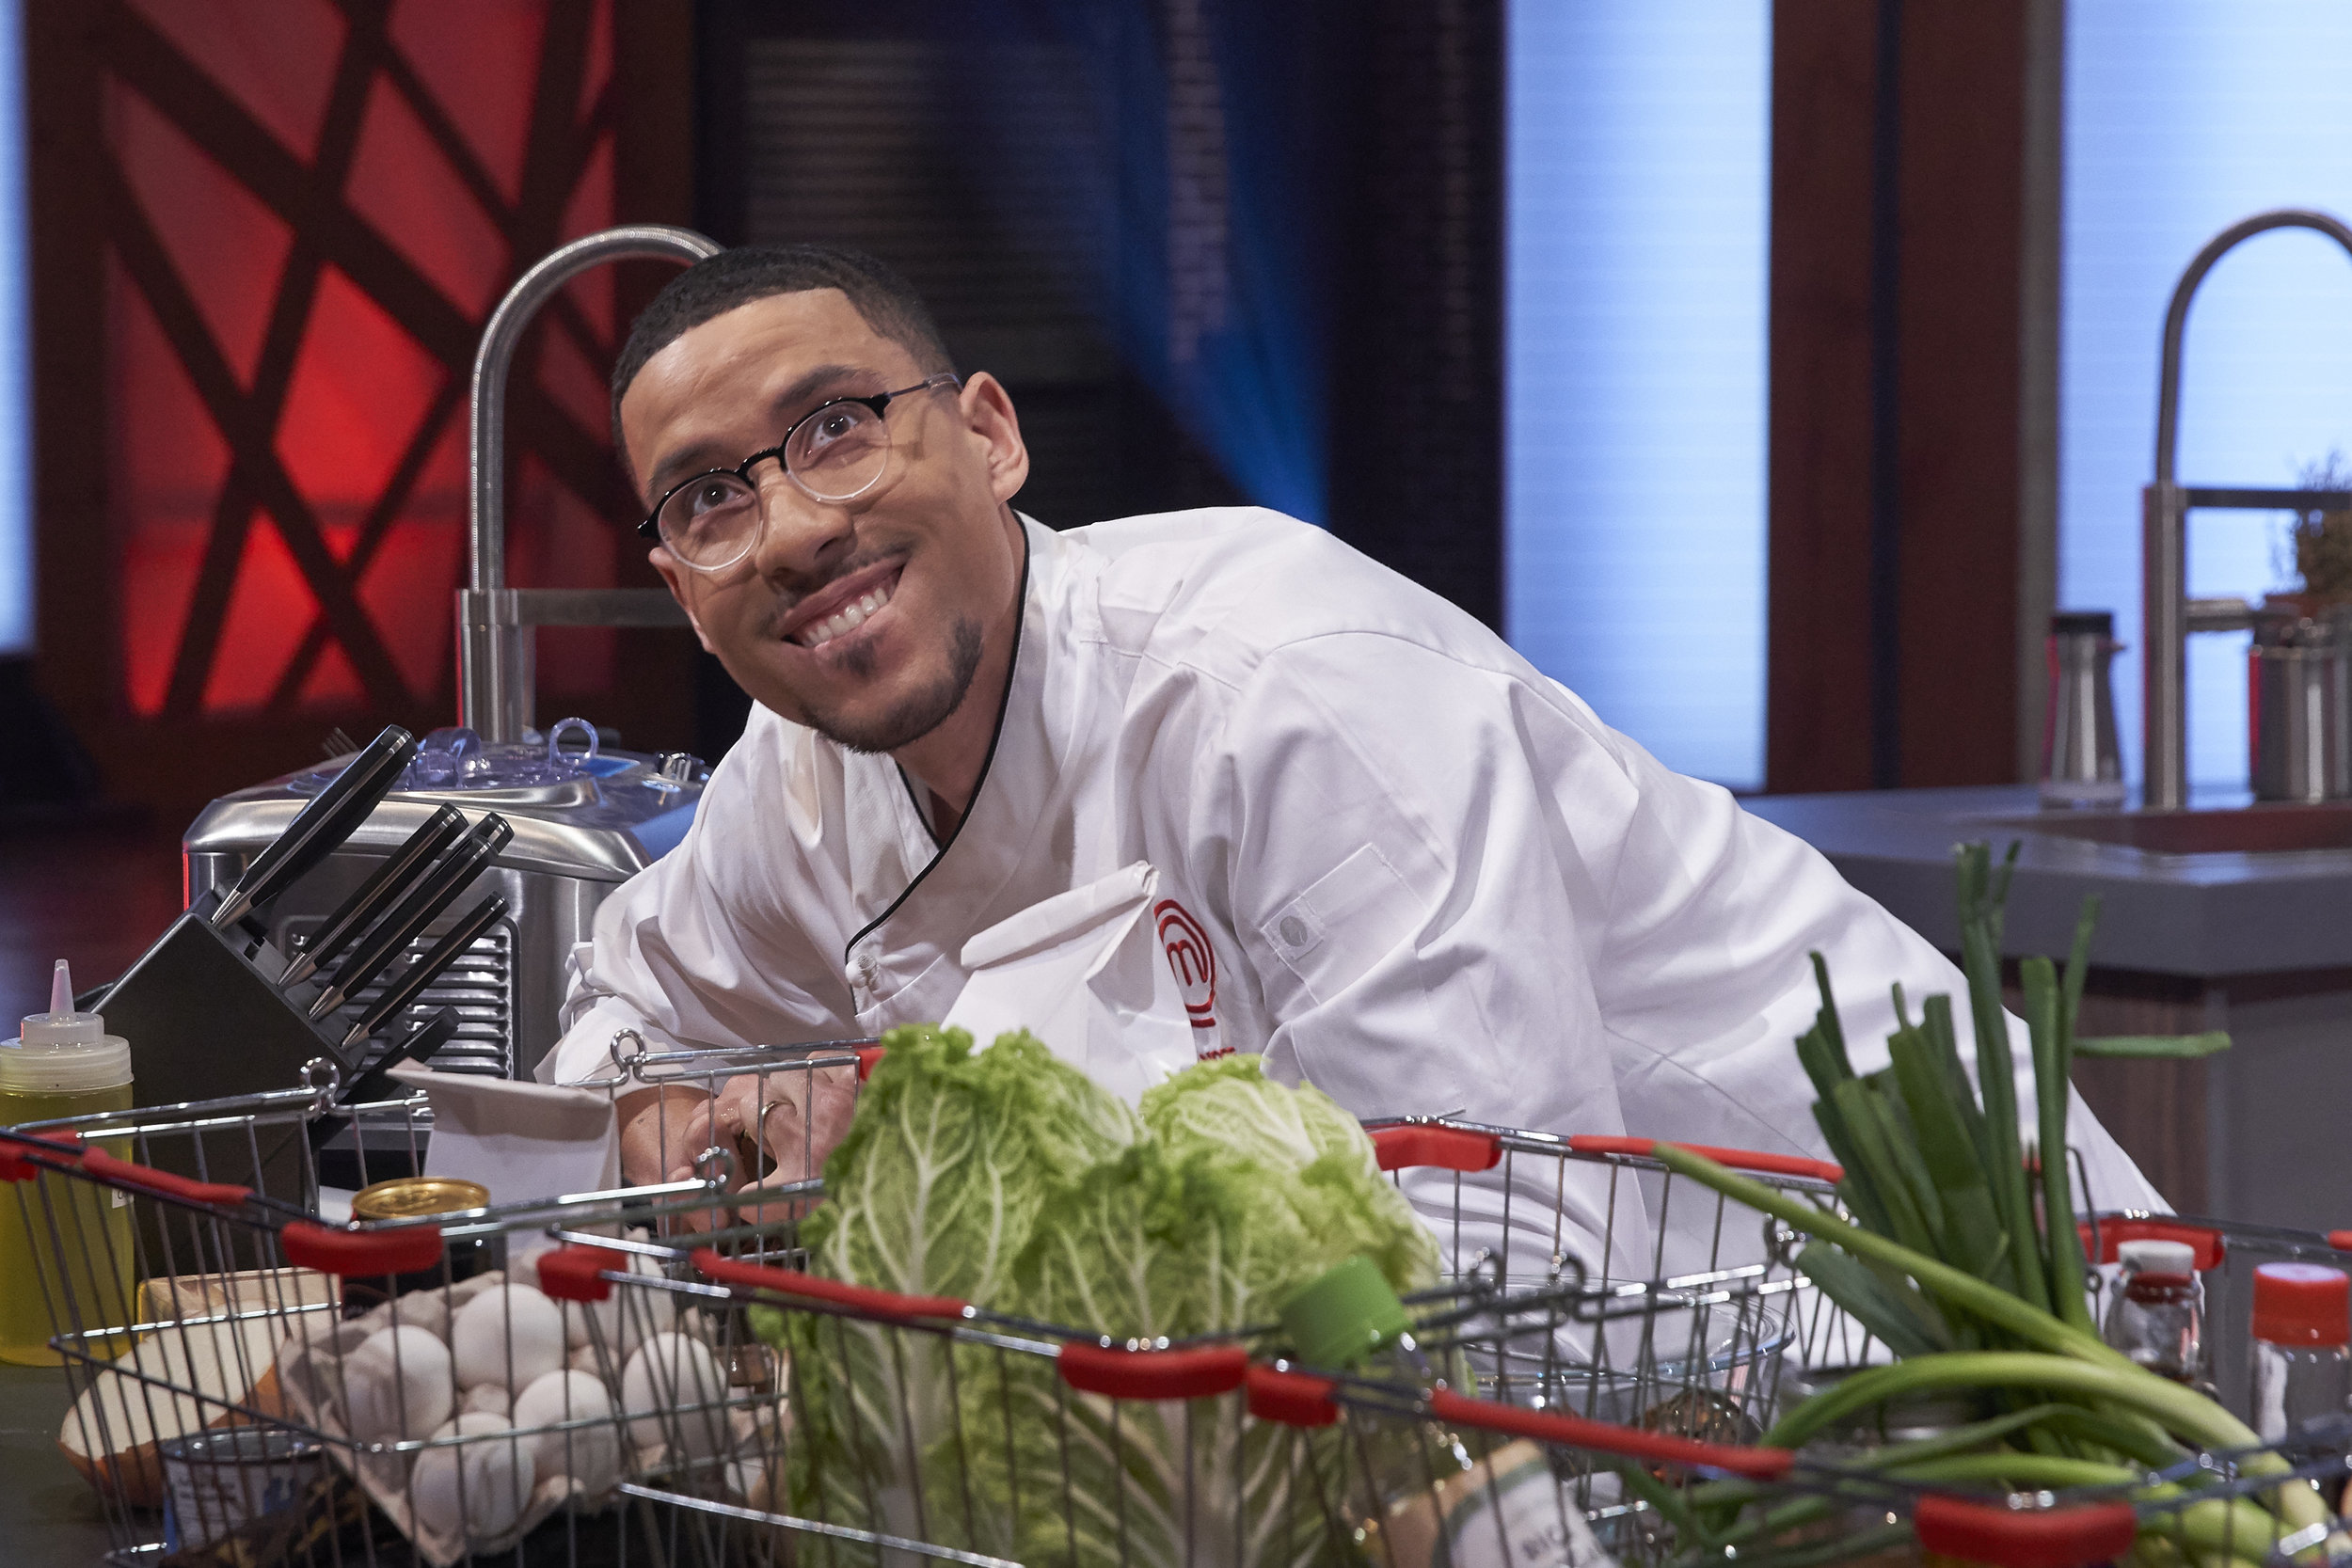 Andre Bhagwandat enjoyed his run in the MasterChef Canada competition